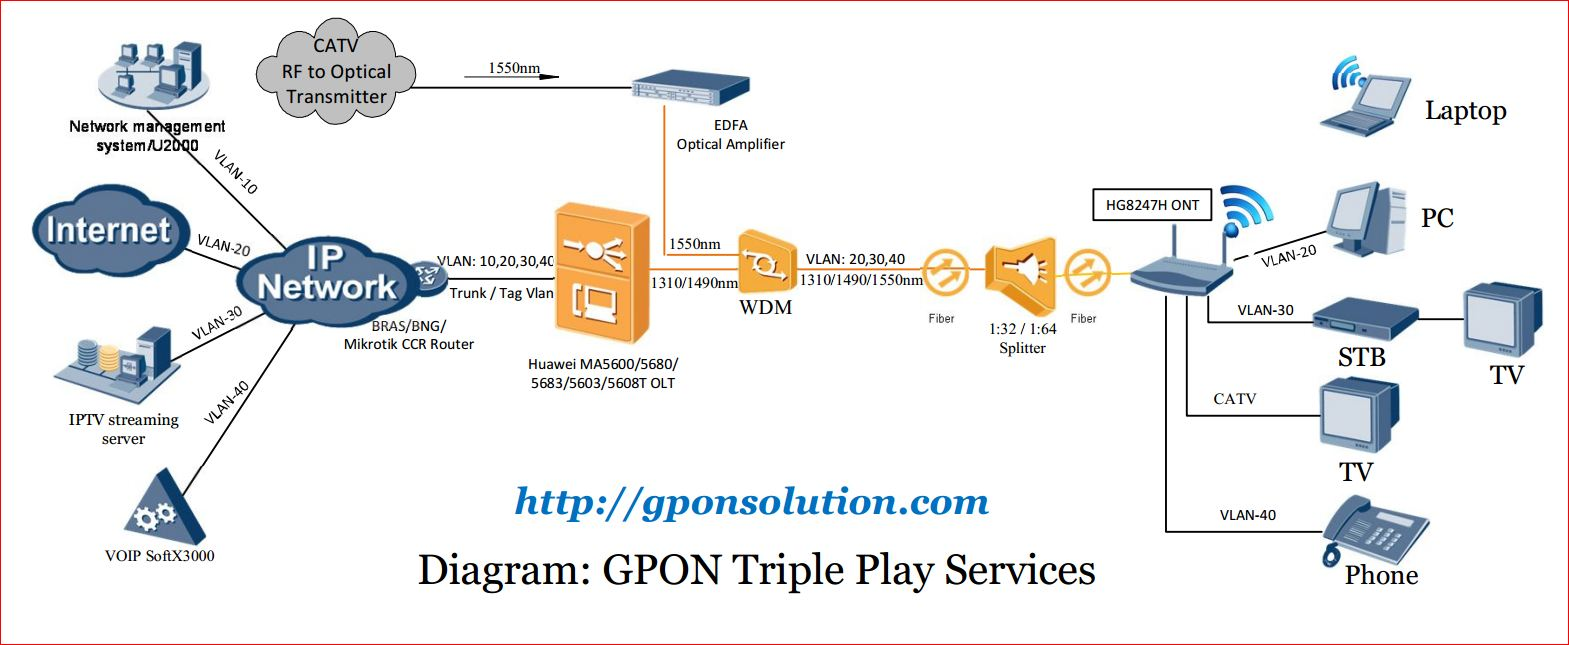 GPON Triple Play Services diagram